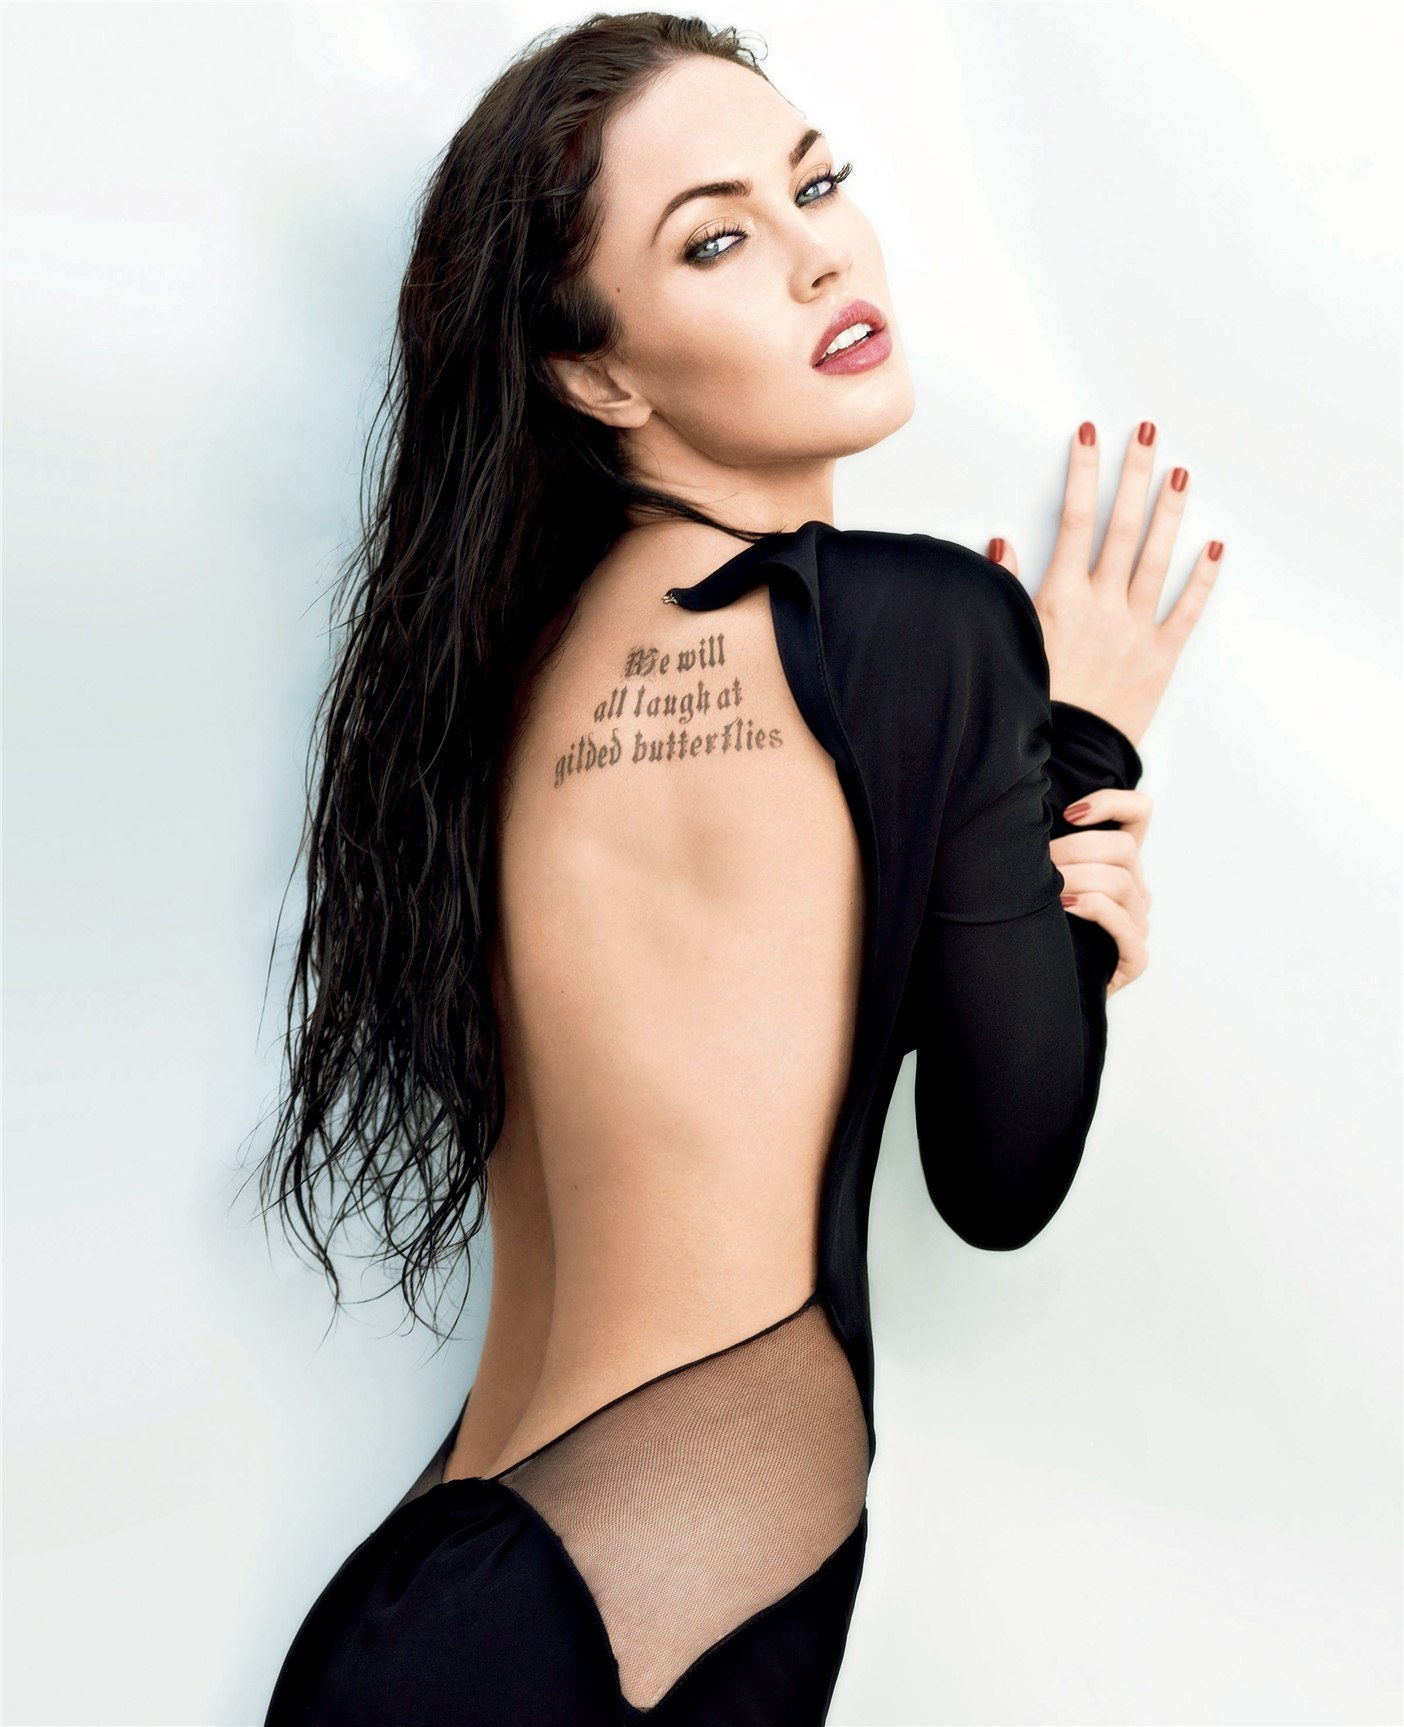 Меган Фокс / Megan Fox by Alexei Hay in Elle US june 2009